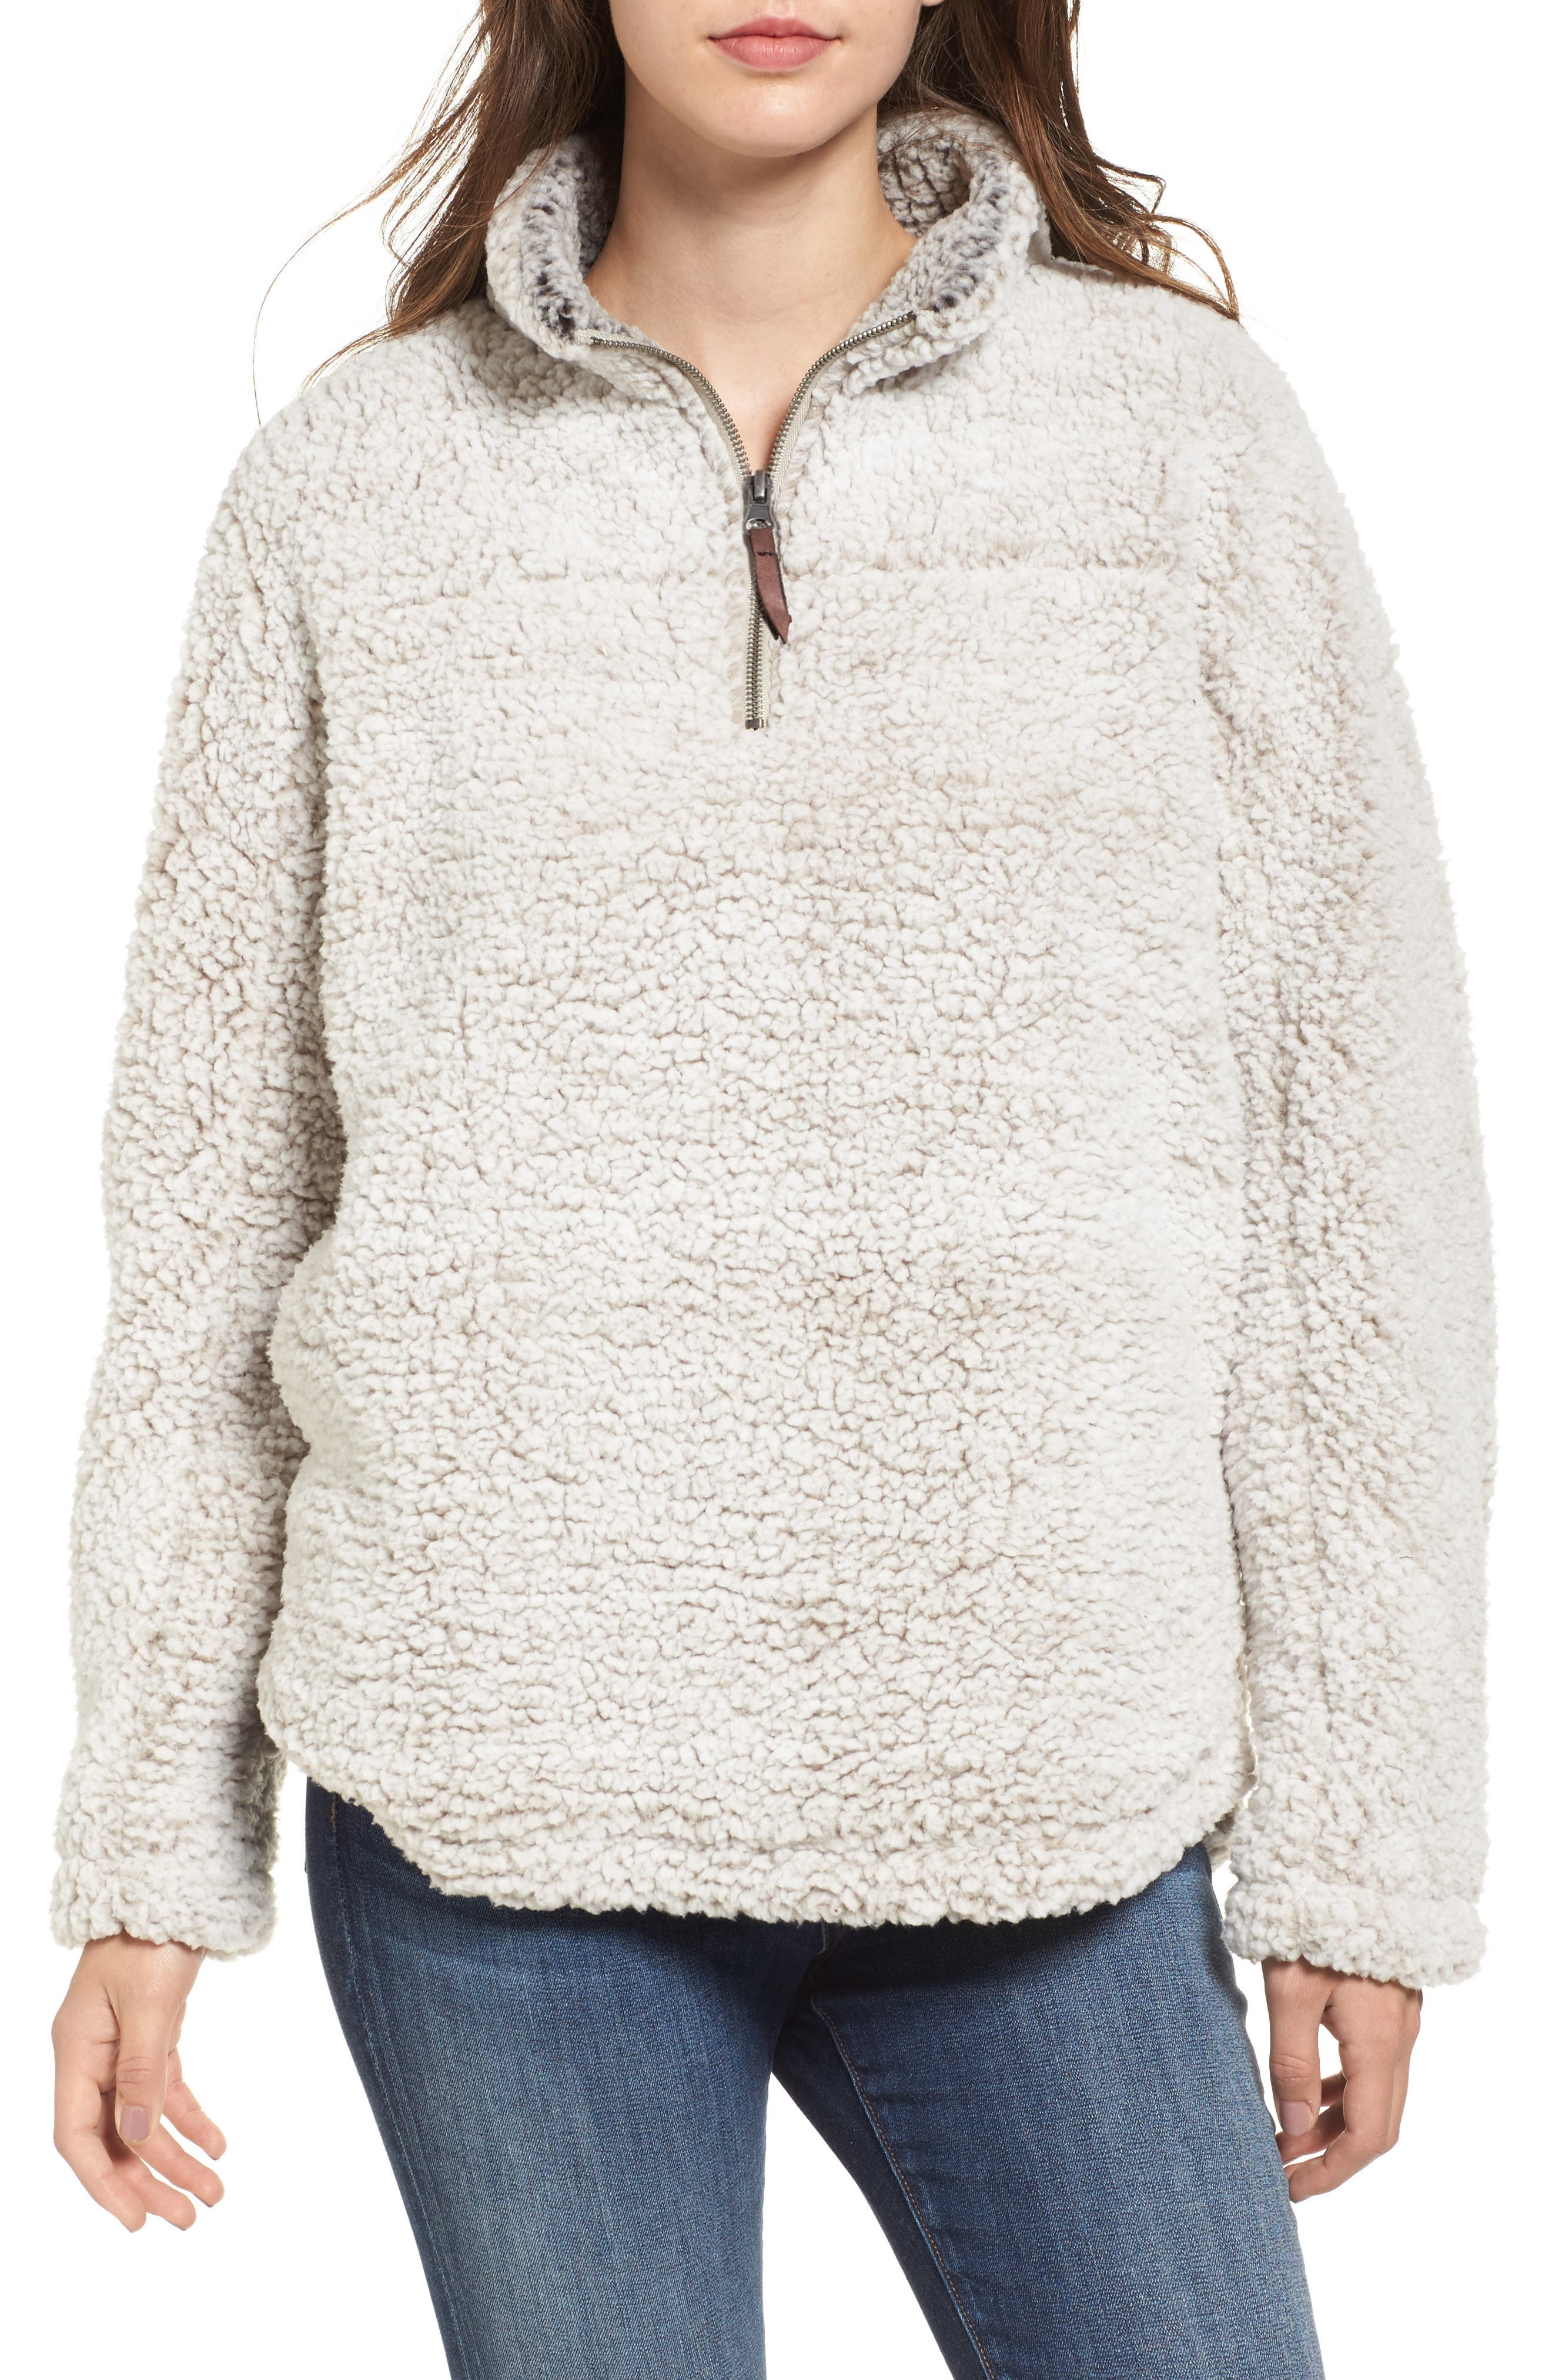 Wubby Fleece Pullover,                             Main thumbnail 1, color,                             Ivory